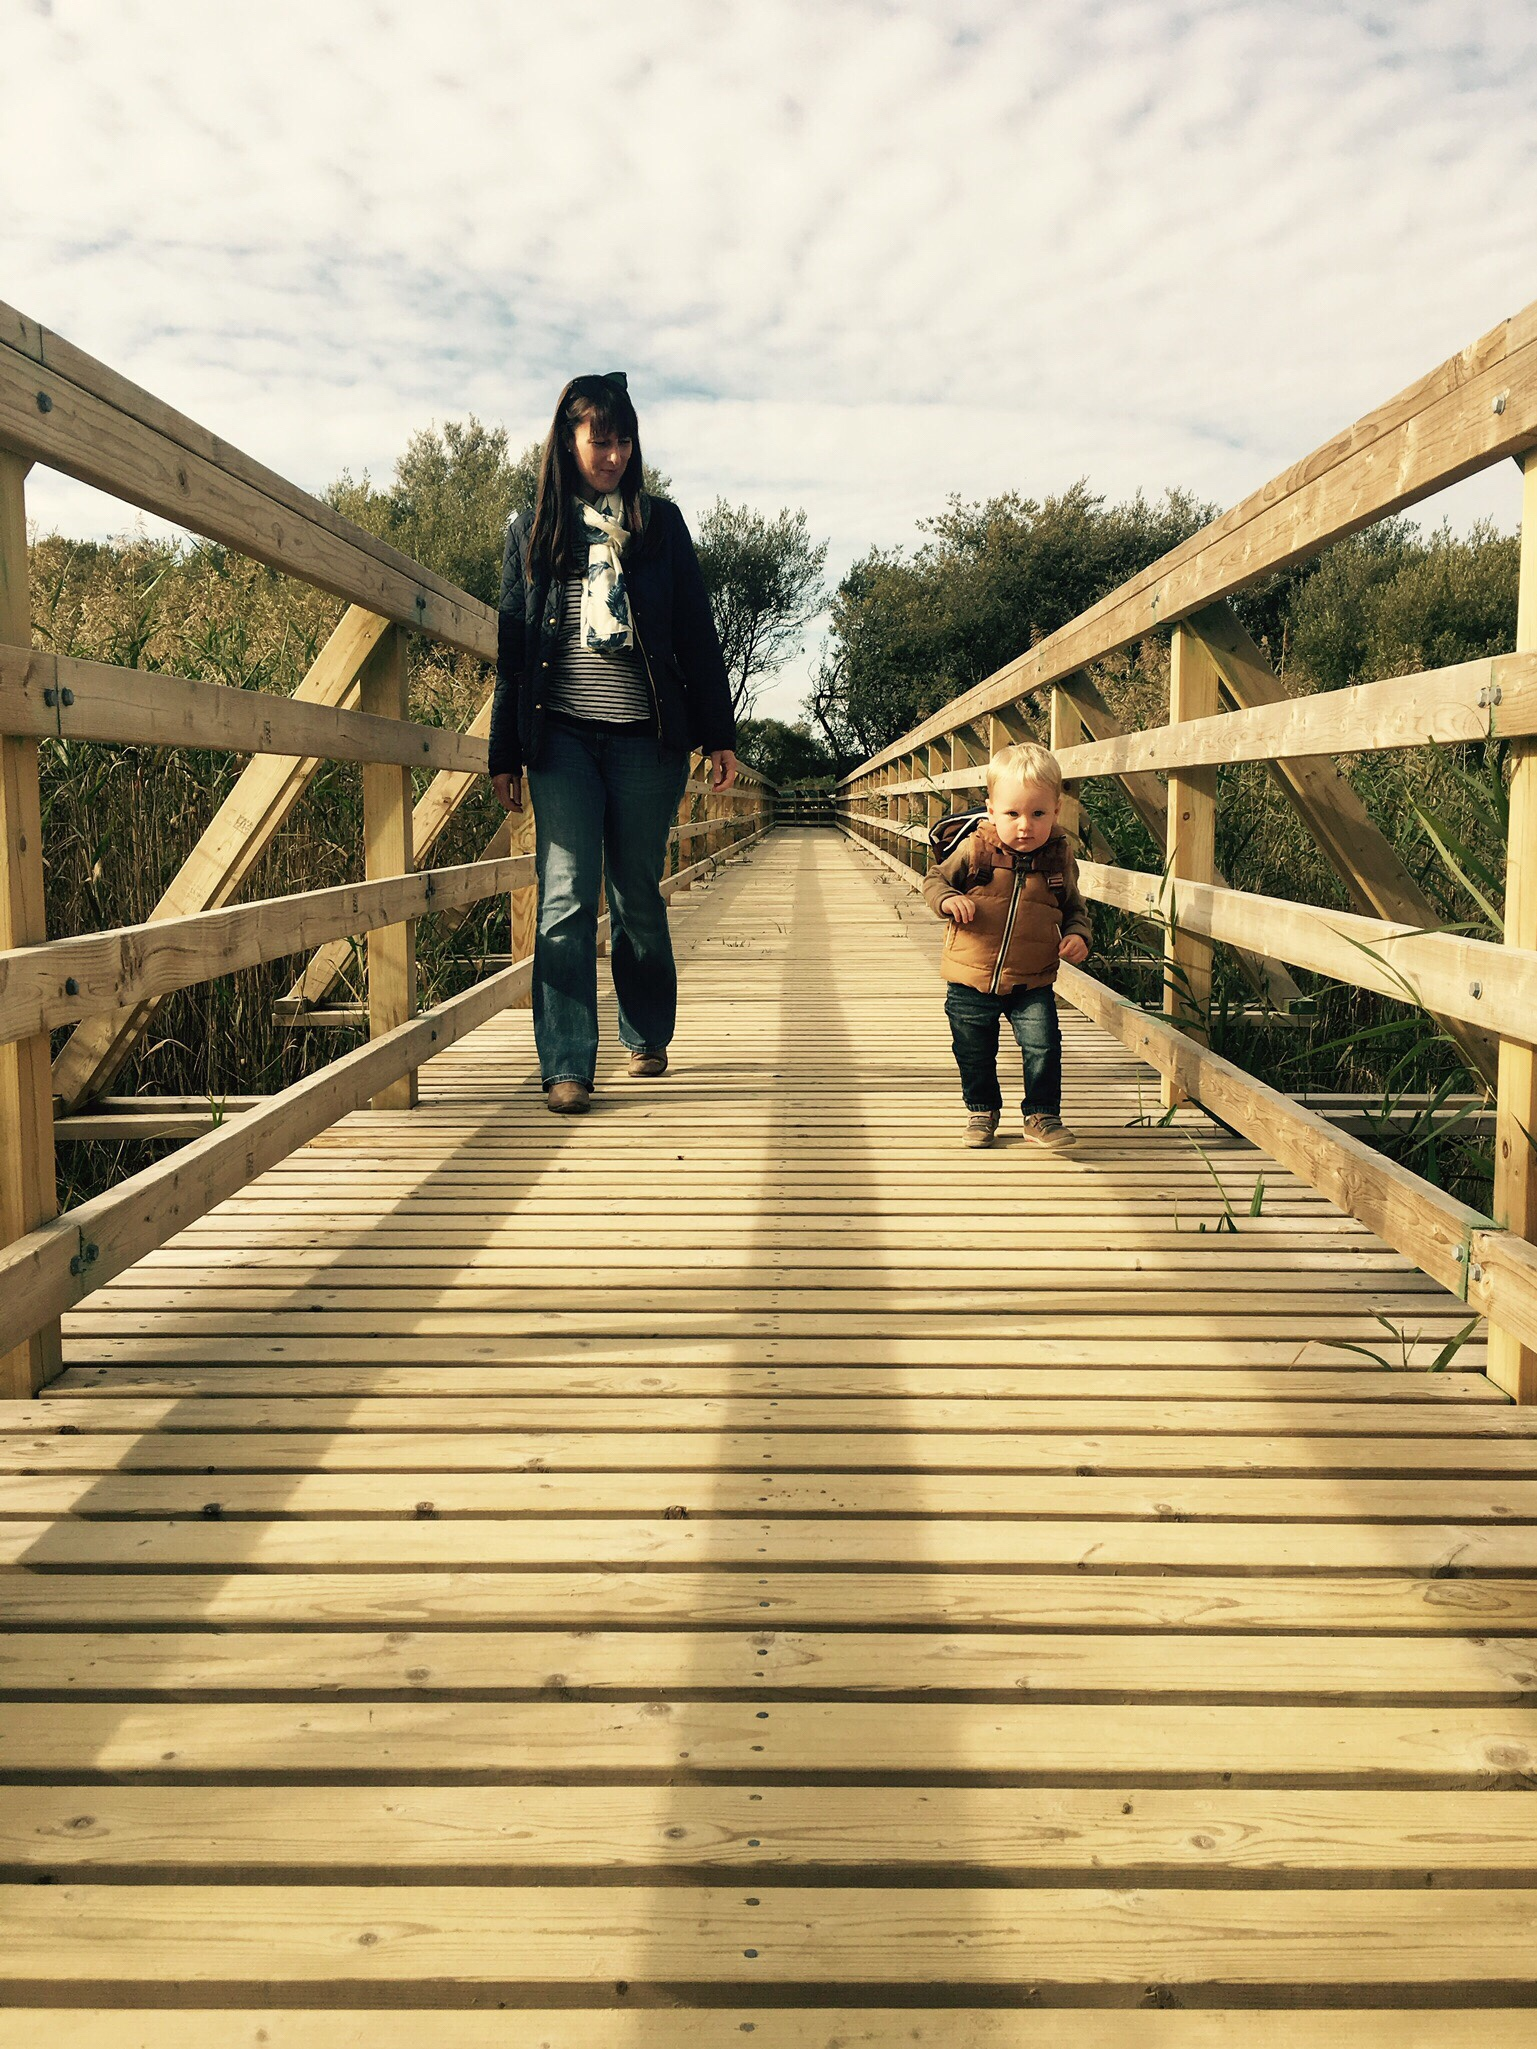 TRAVEL REVIEW: How to make a kids' holiday easier – take the grandparents